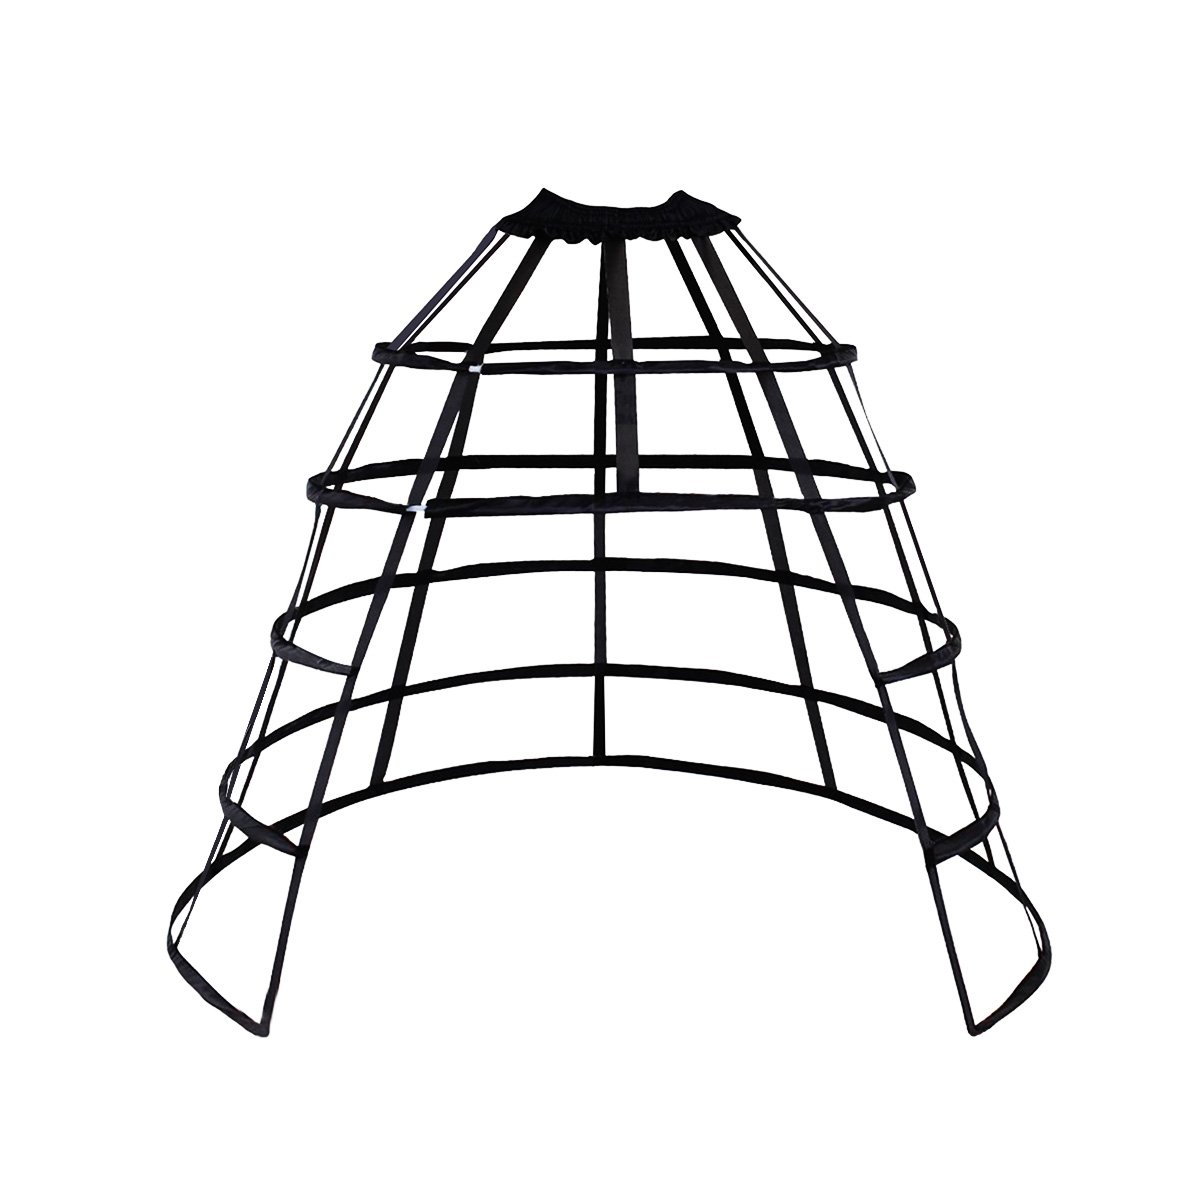 HappyStory Crinoline cage Hoop Skirt Petticoat Pannier 5 Hoops Bustle cage (Black Front-Open) by HappyStory (Image #1)